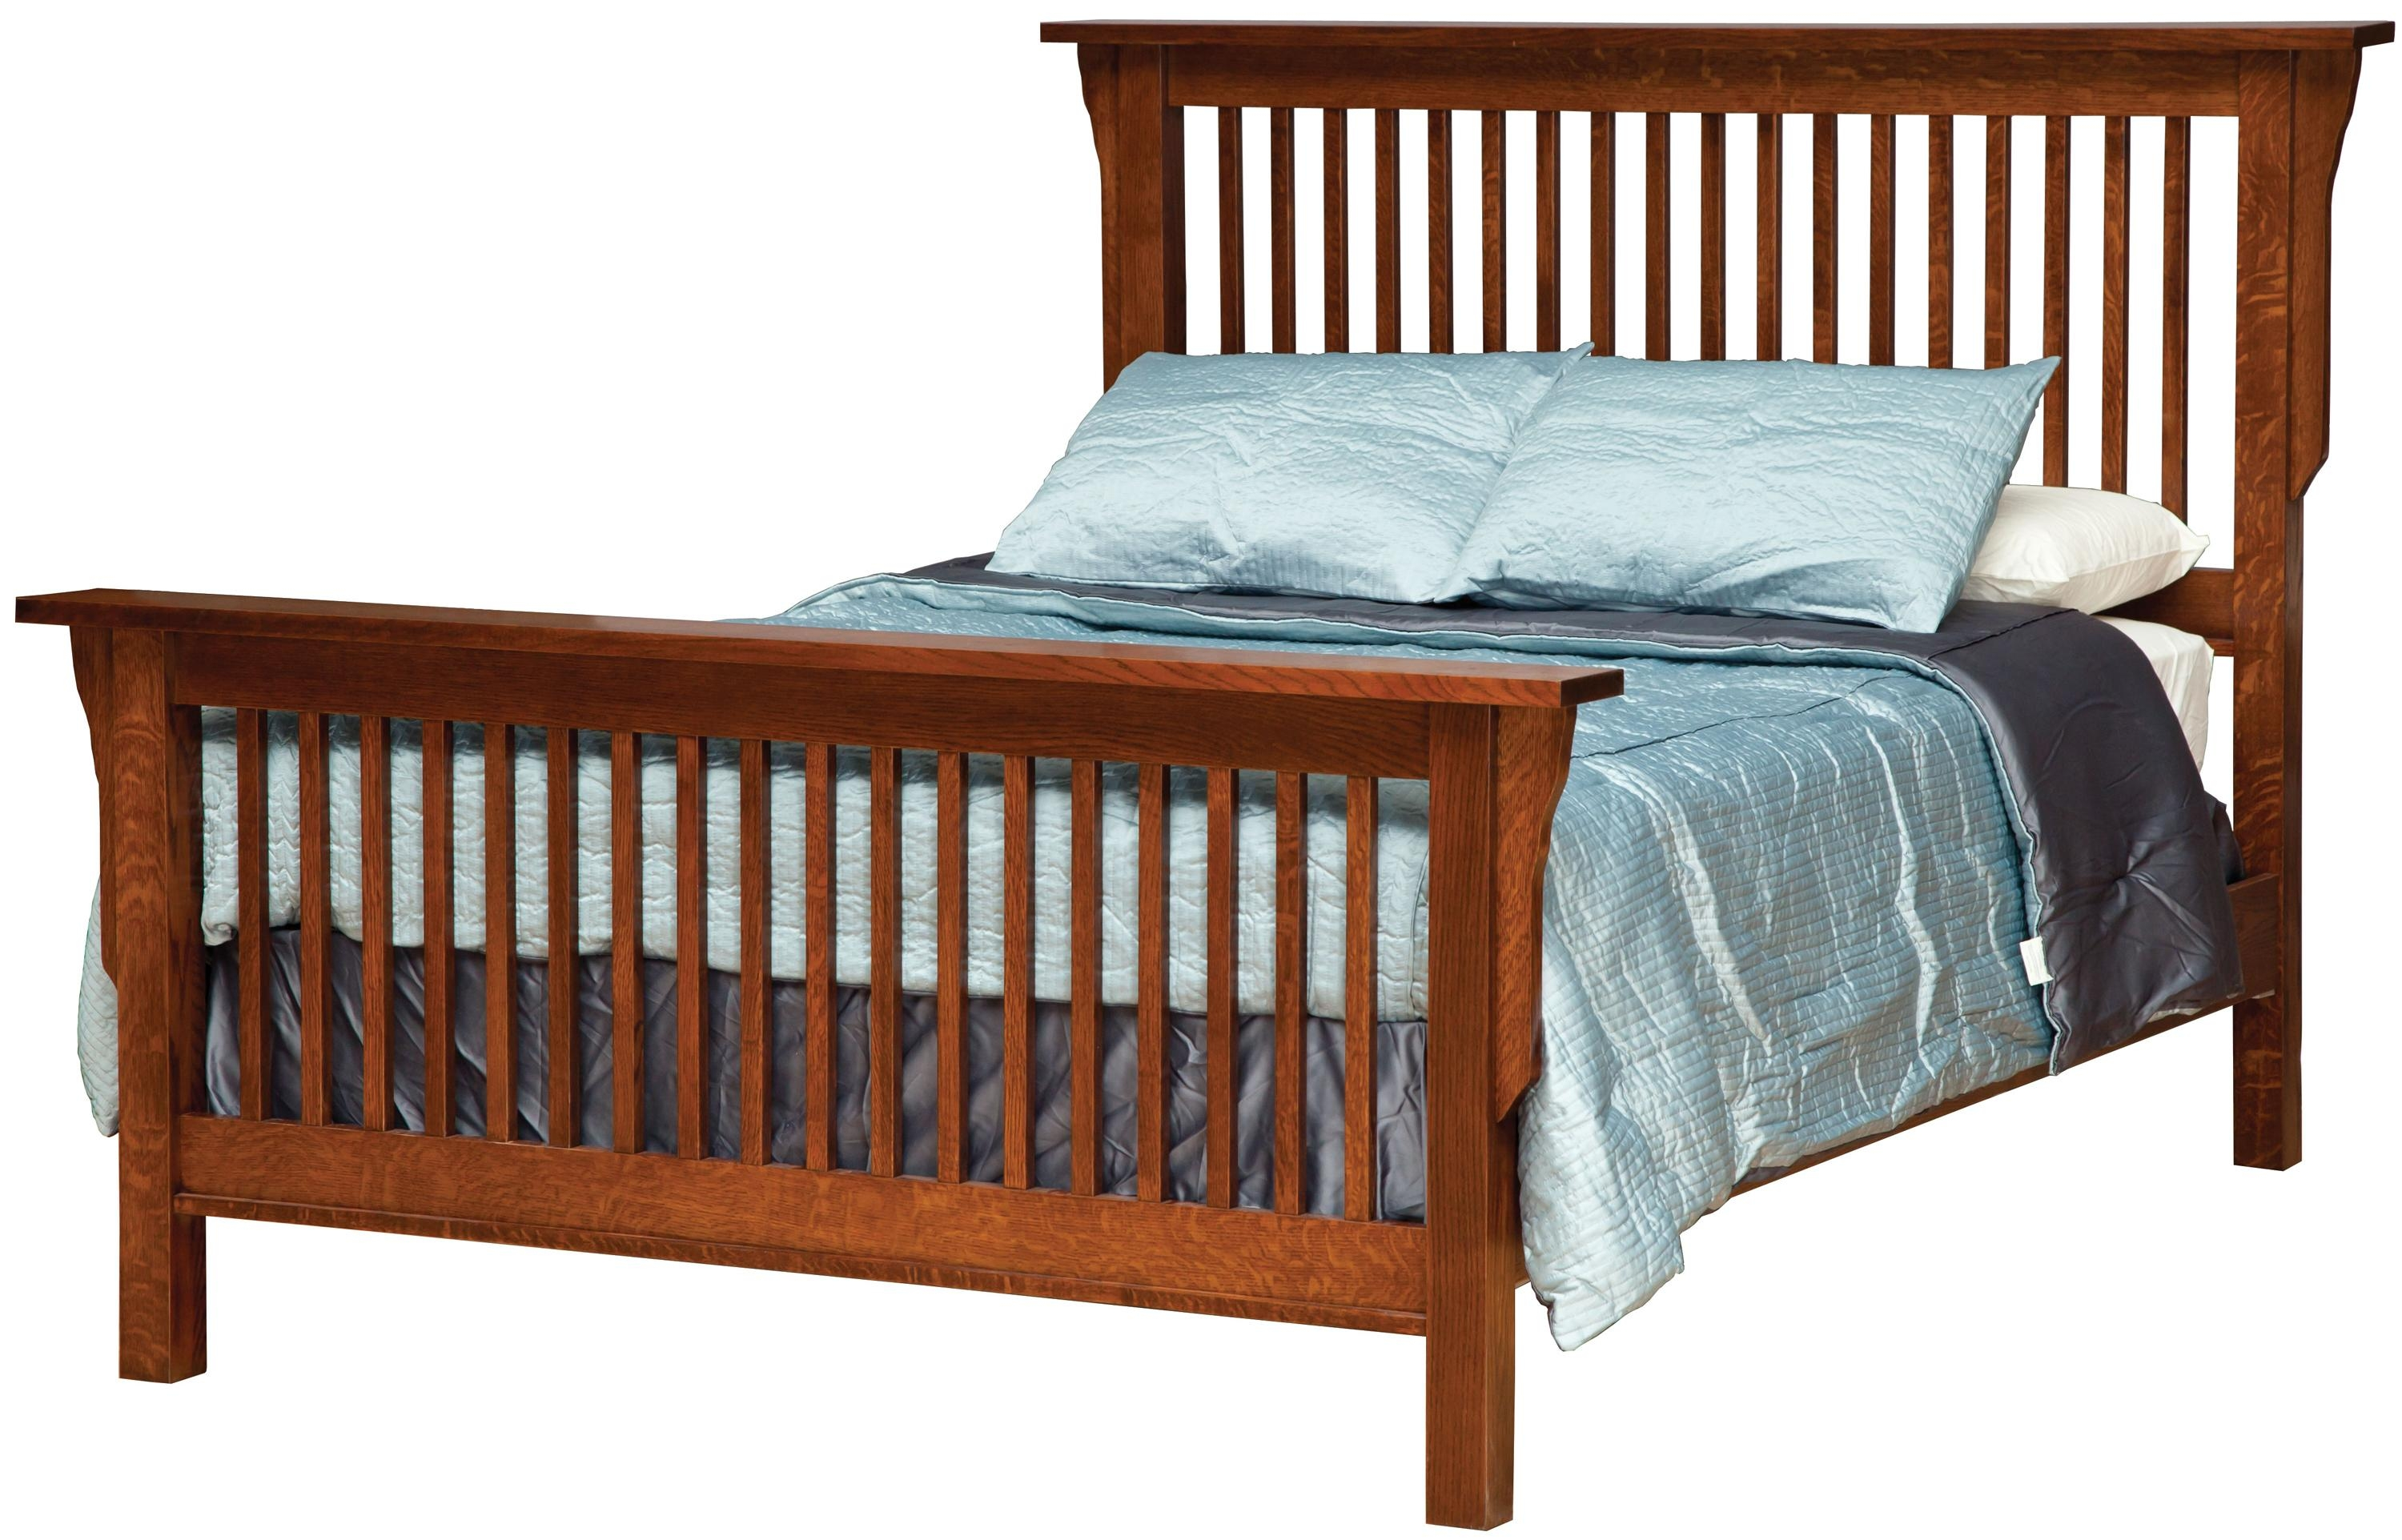 Bed Frame For Headboards And Footboardsbed frame for headboards and footboards headboard designs